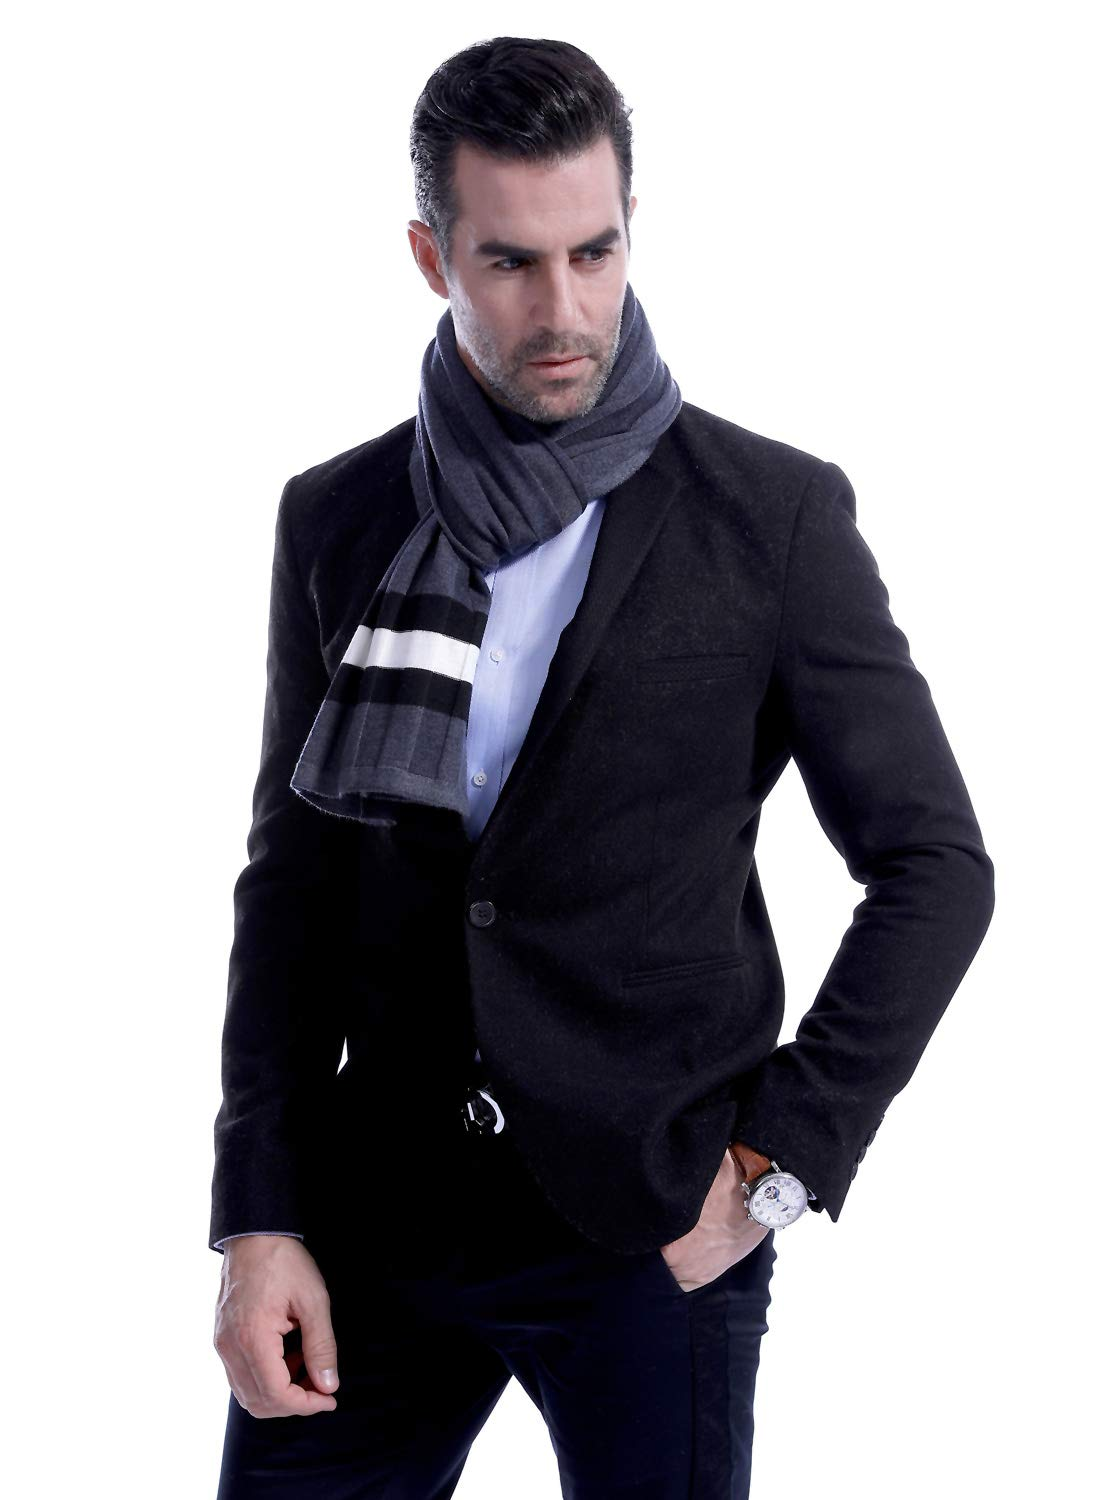 Men Plain Thermal Scarf Knitted Striped Winter Scarves One Size Leisure Business Men Warm Neckerchief Gray by Panegy (Image #4)